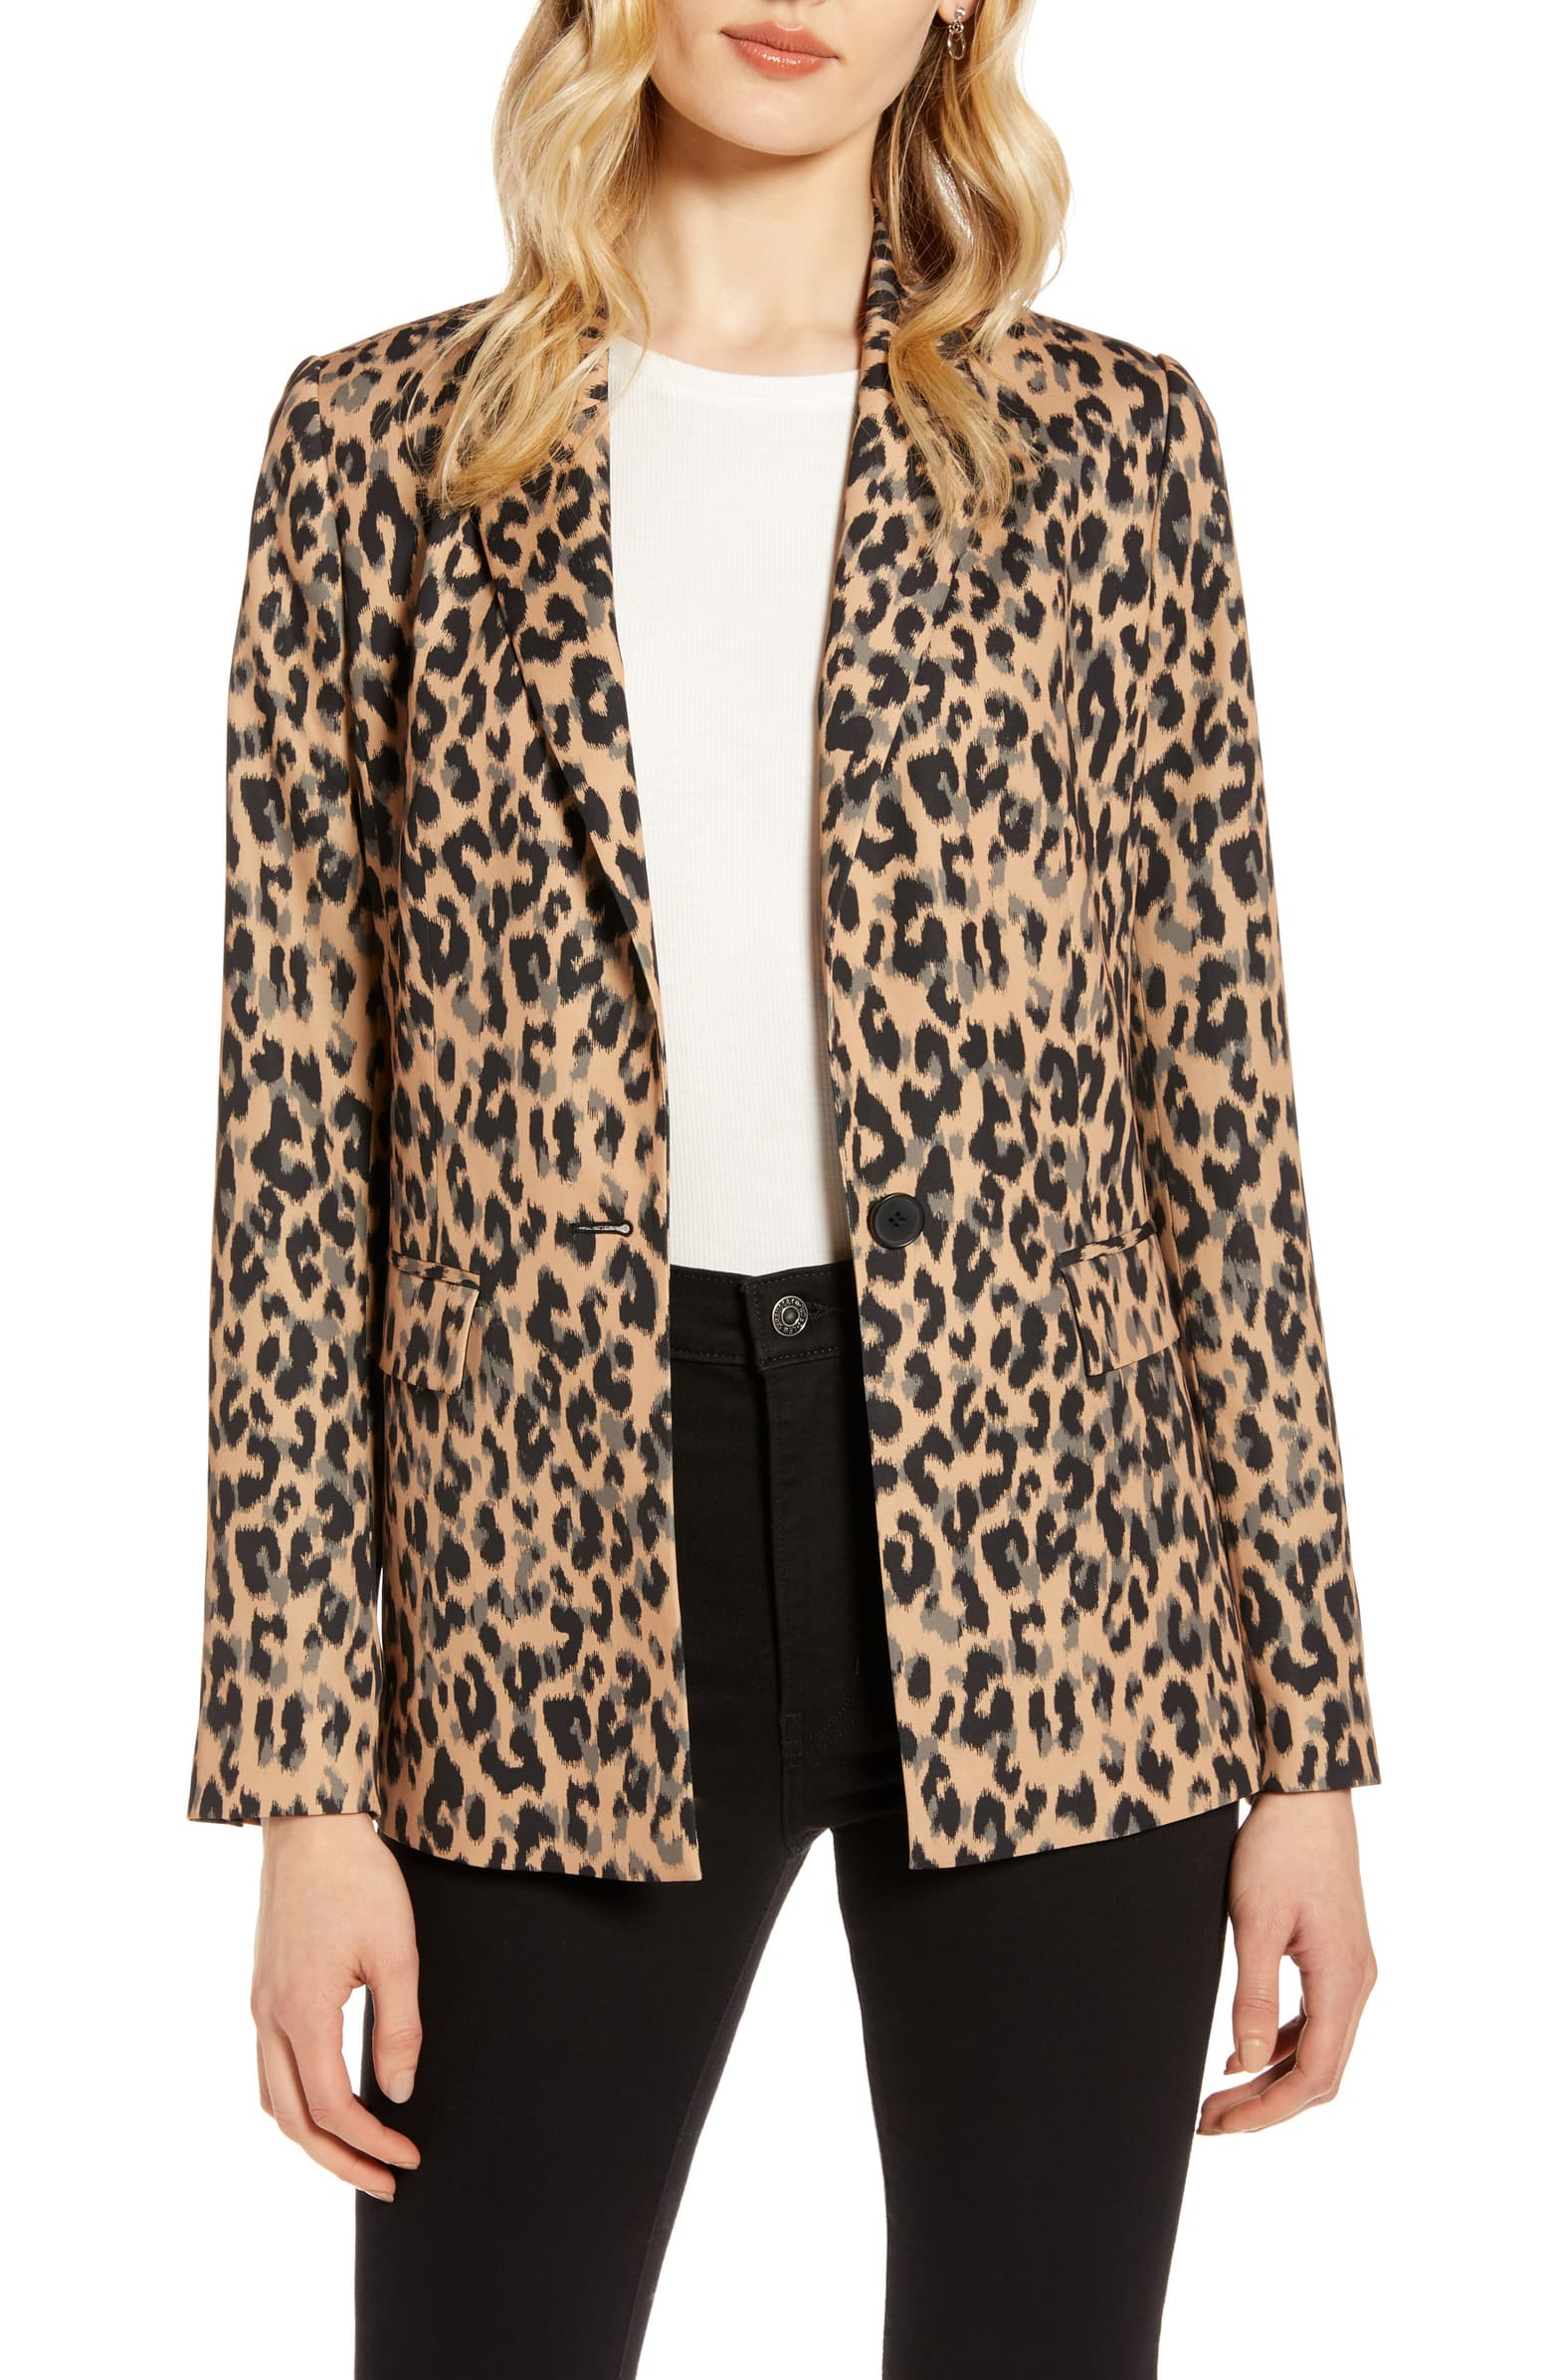 Nordstrom Anniversary Sale - #NSALE - Nordstrom Sale - Fall Fashion - Women's Fashion - Sabby Style-18